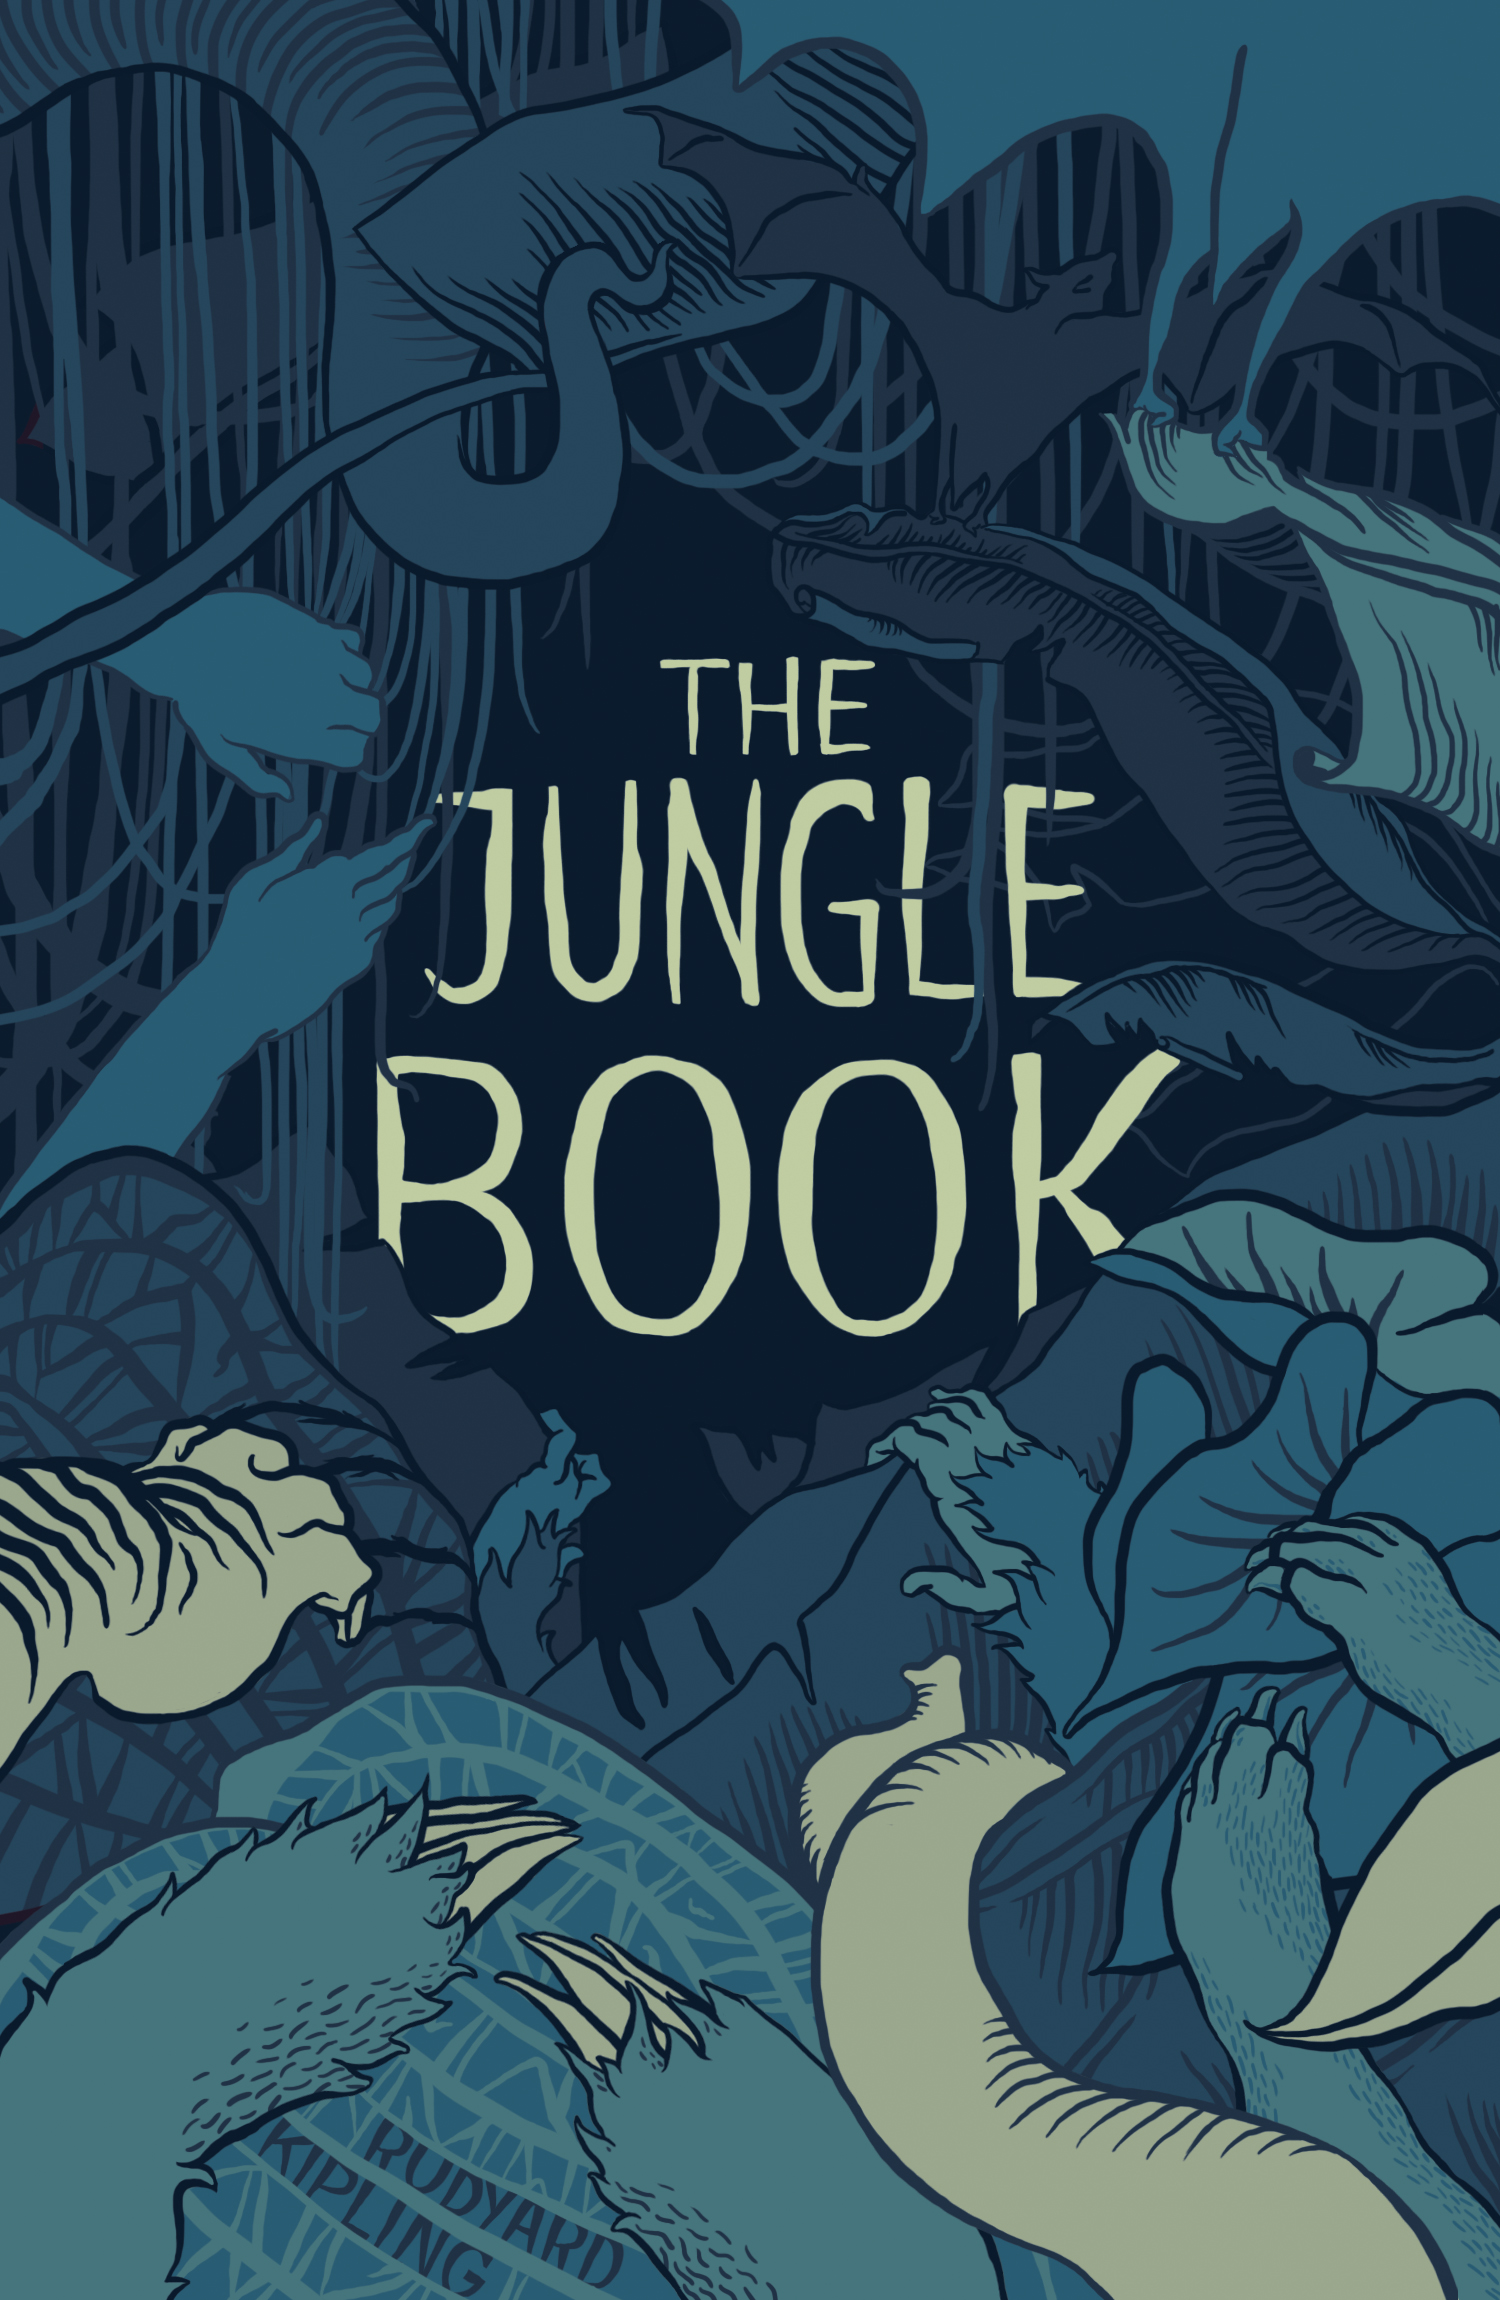 Book Cover With Illustration : Cover illustration the jungle book by brett